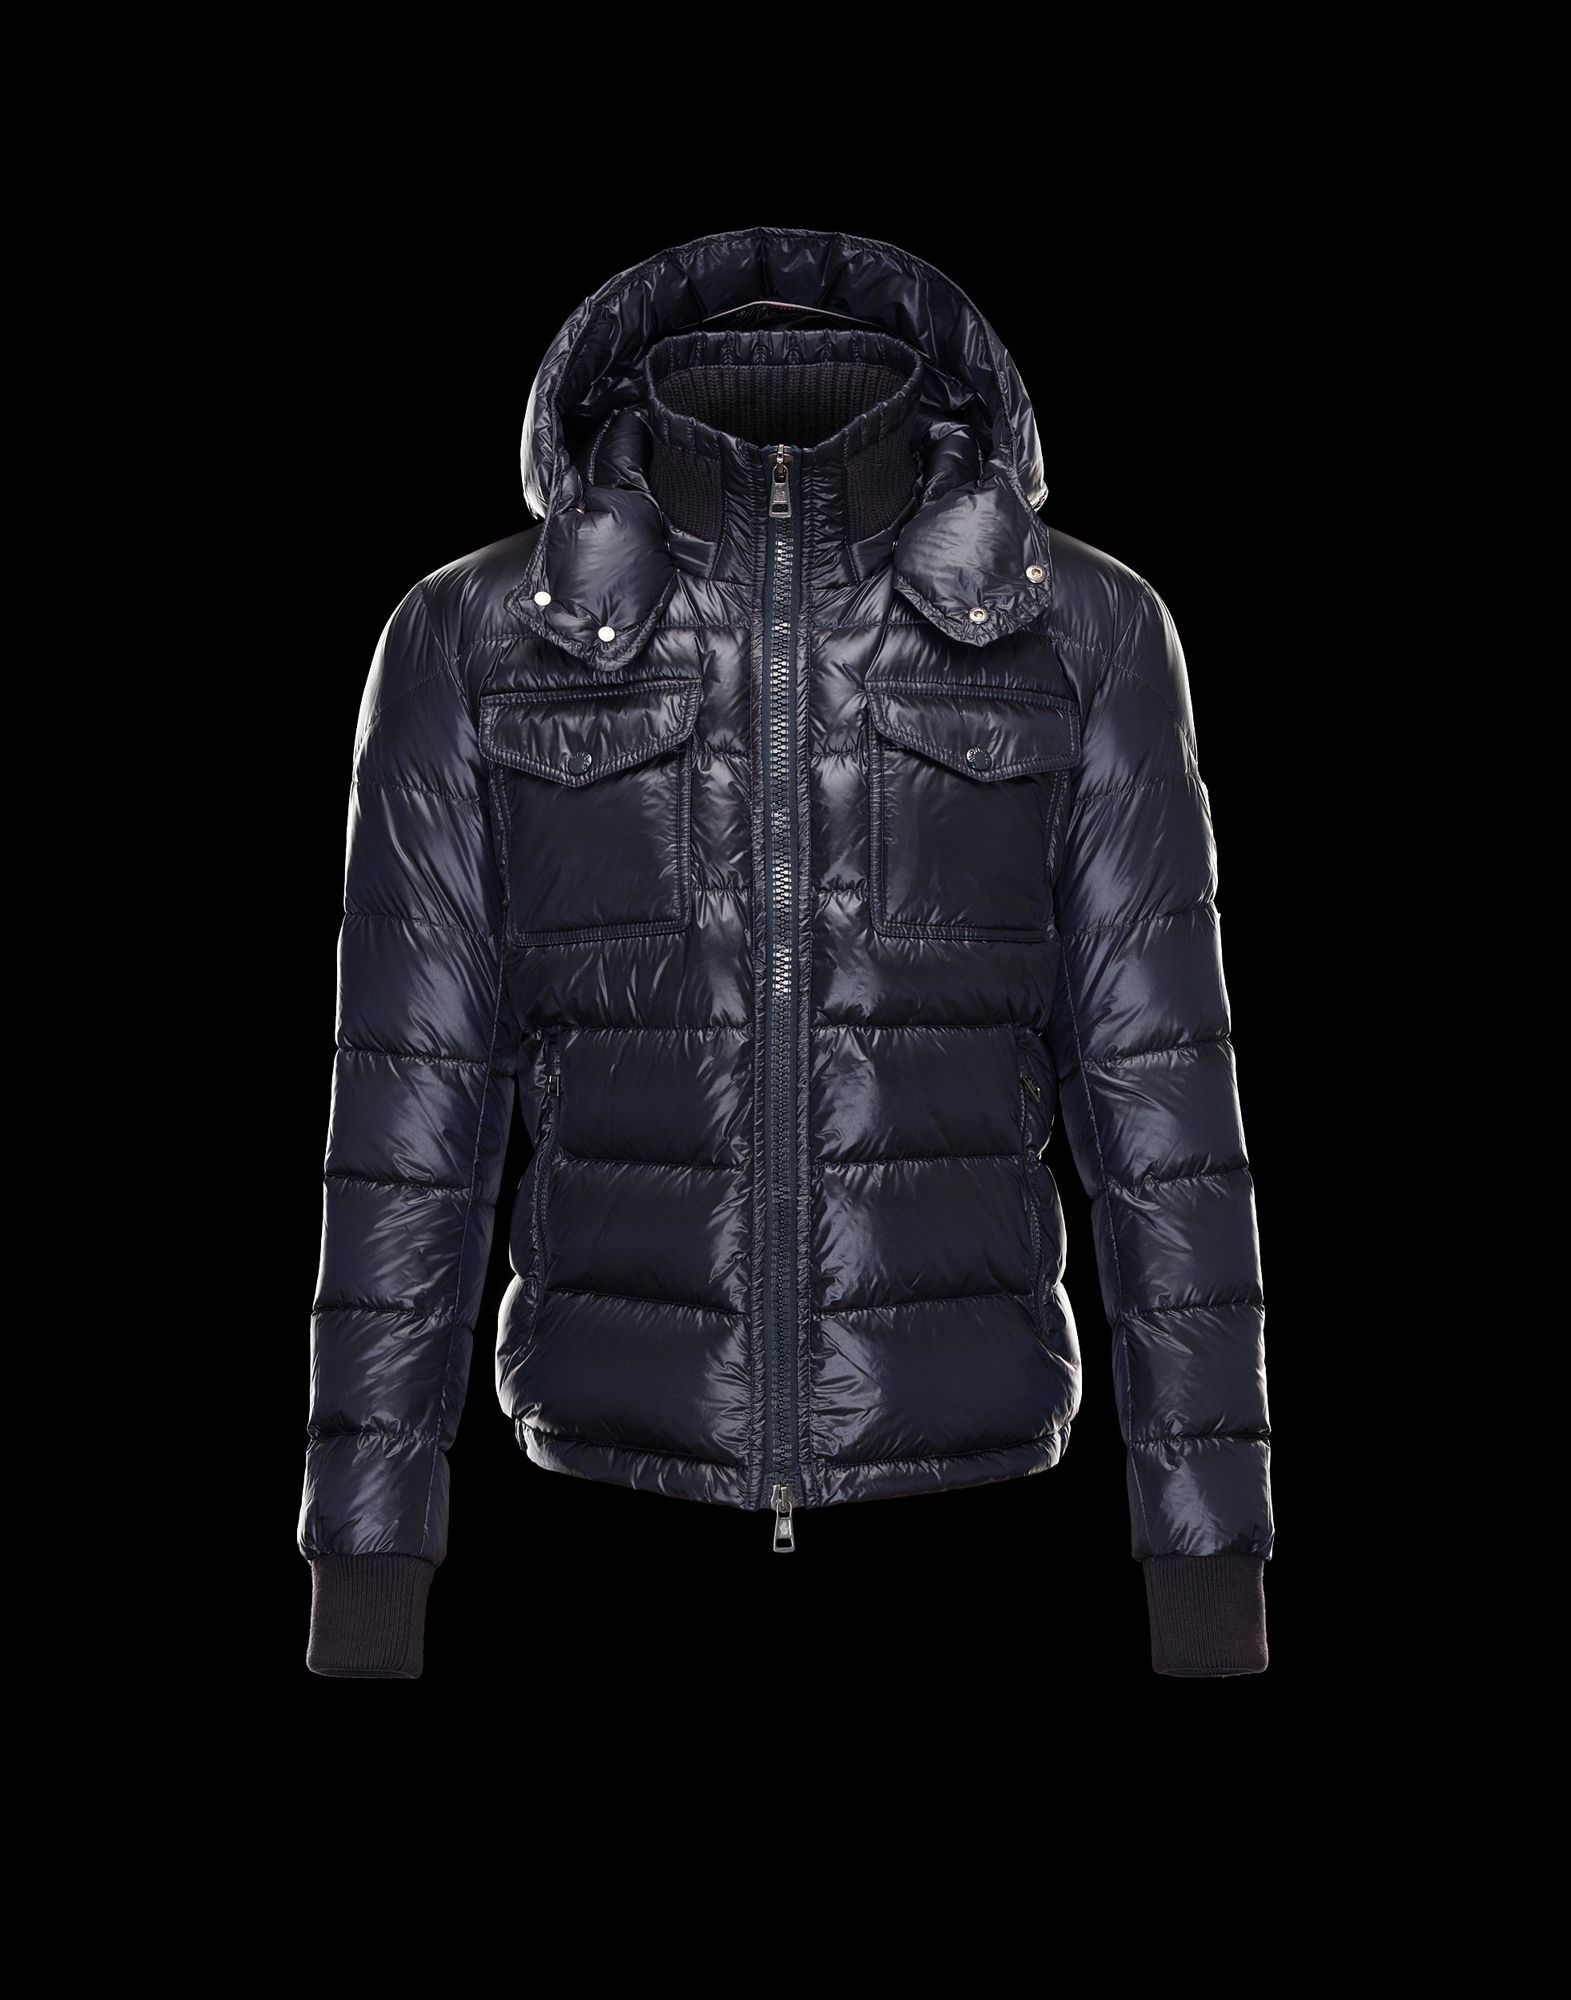 Moncler FEDOR Featured Down Jackets Mens Blue #winter #blue #jackets